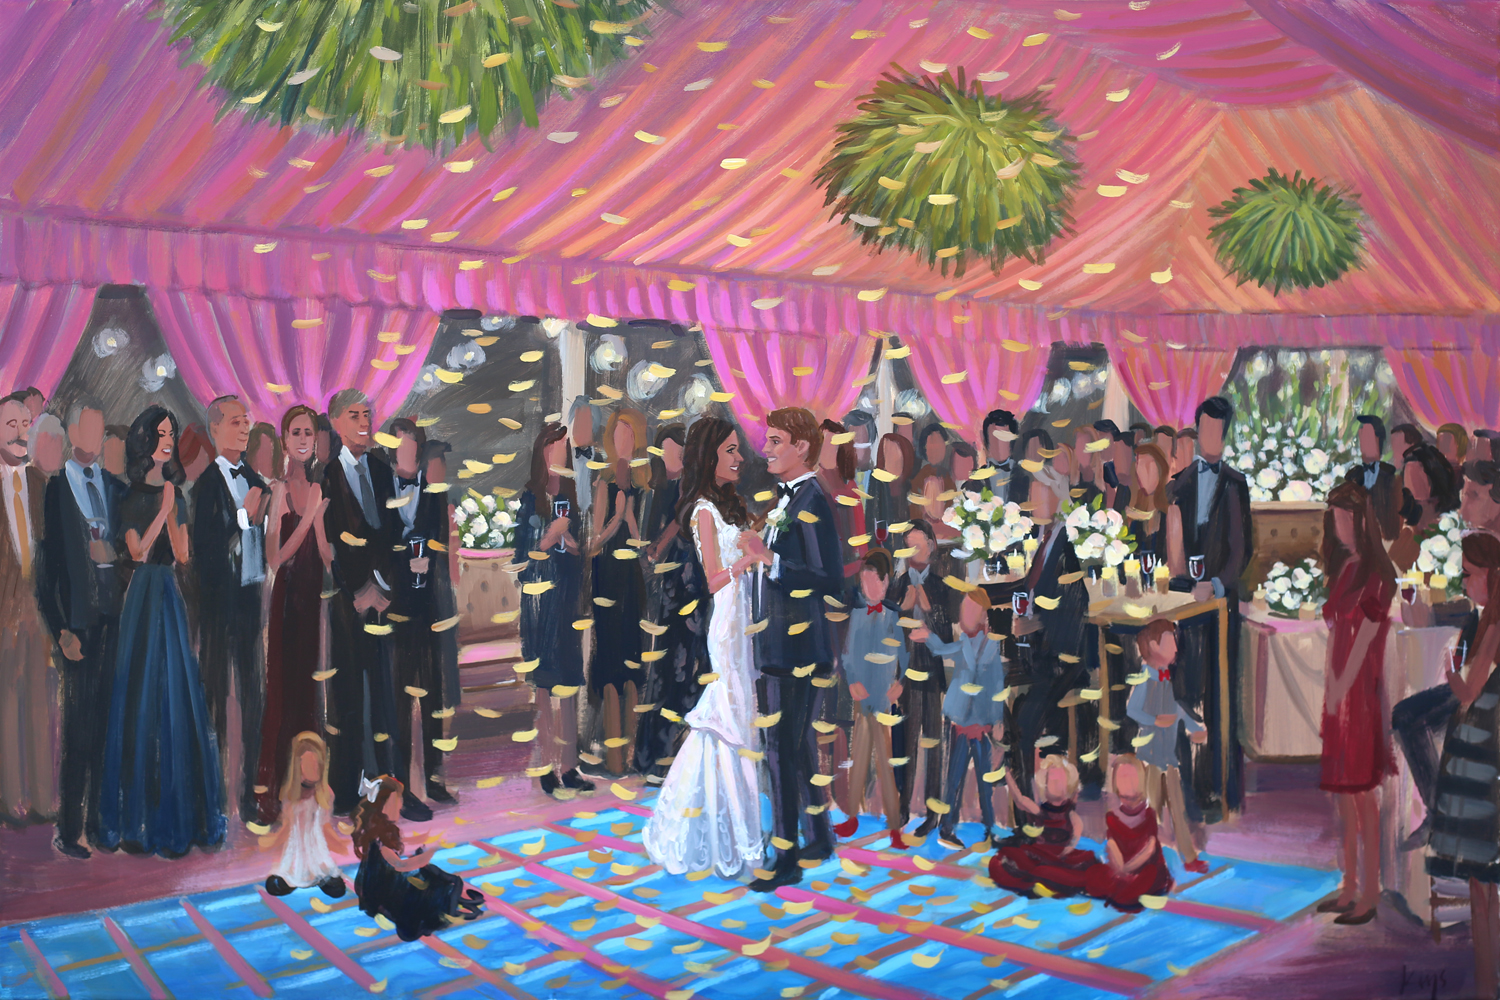 Ben Keys, Live Wedding Painter, captured Ashlyn + Kevin's New Year's Eve wedding at the beautiful Figure 8 Island Yacht Club located in Wilmington, NC.